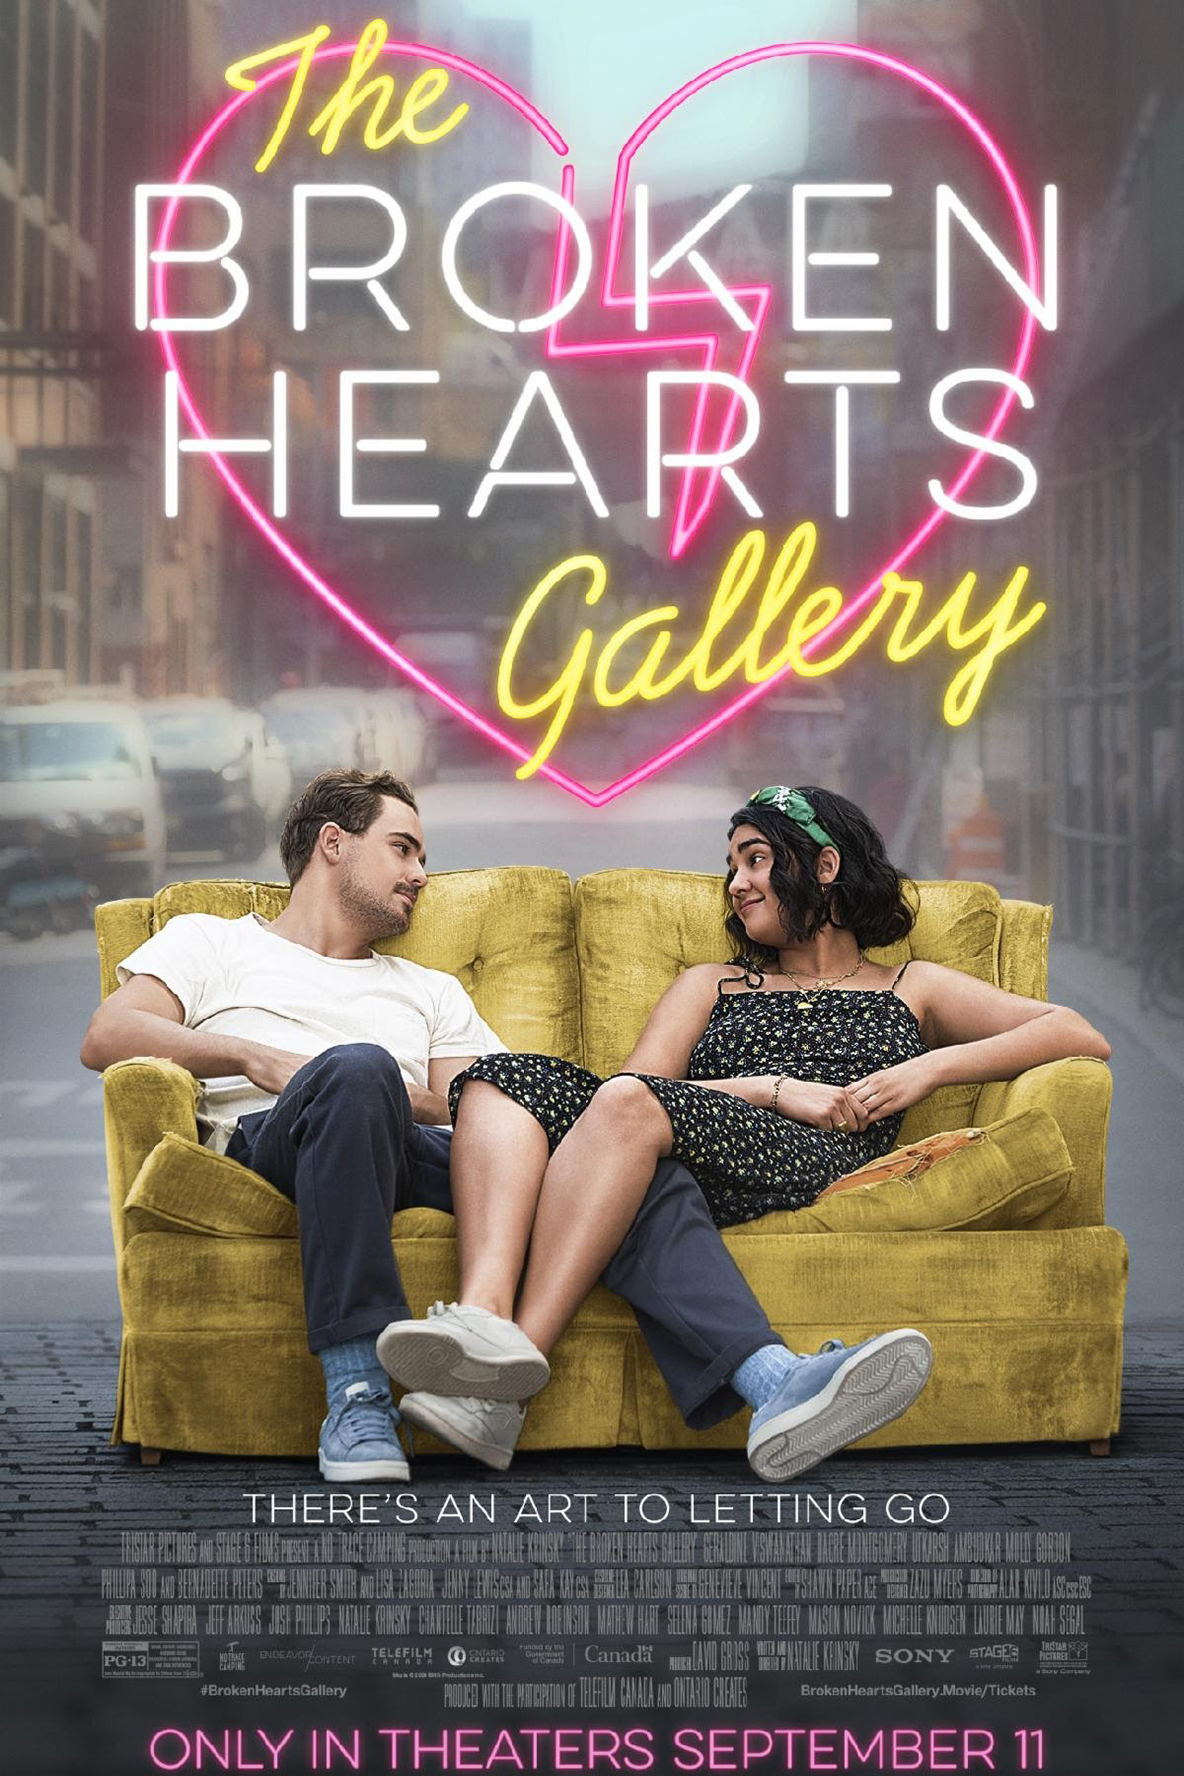 Poster for Broken Hearts Gallery, The